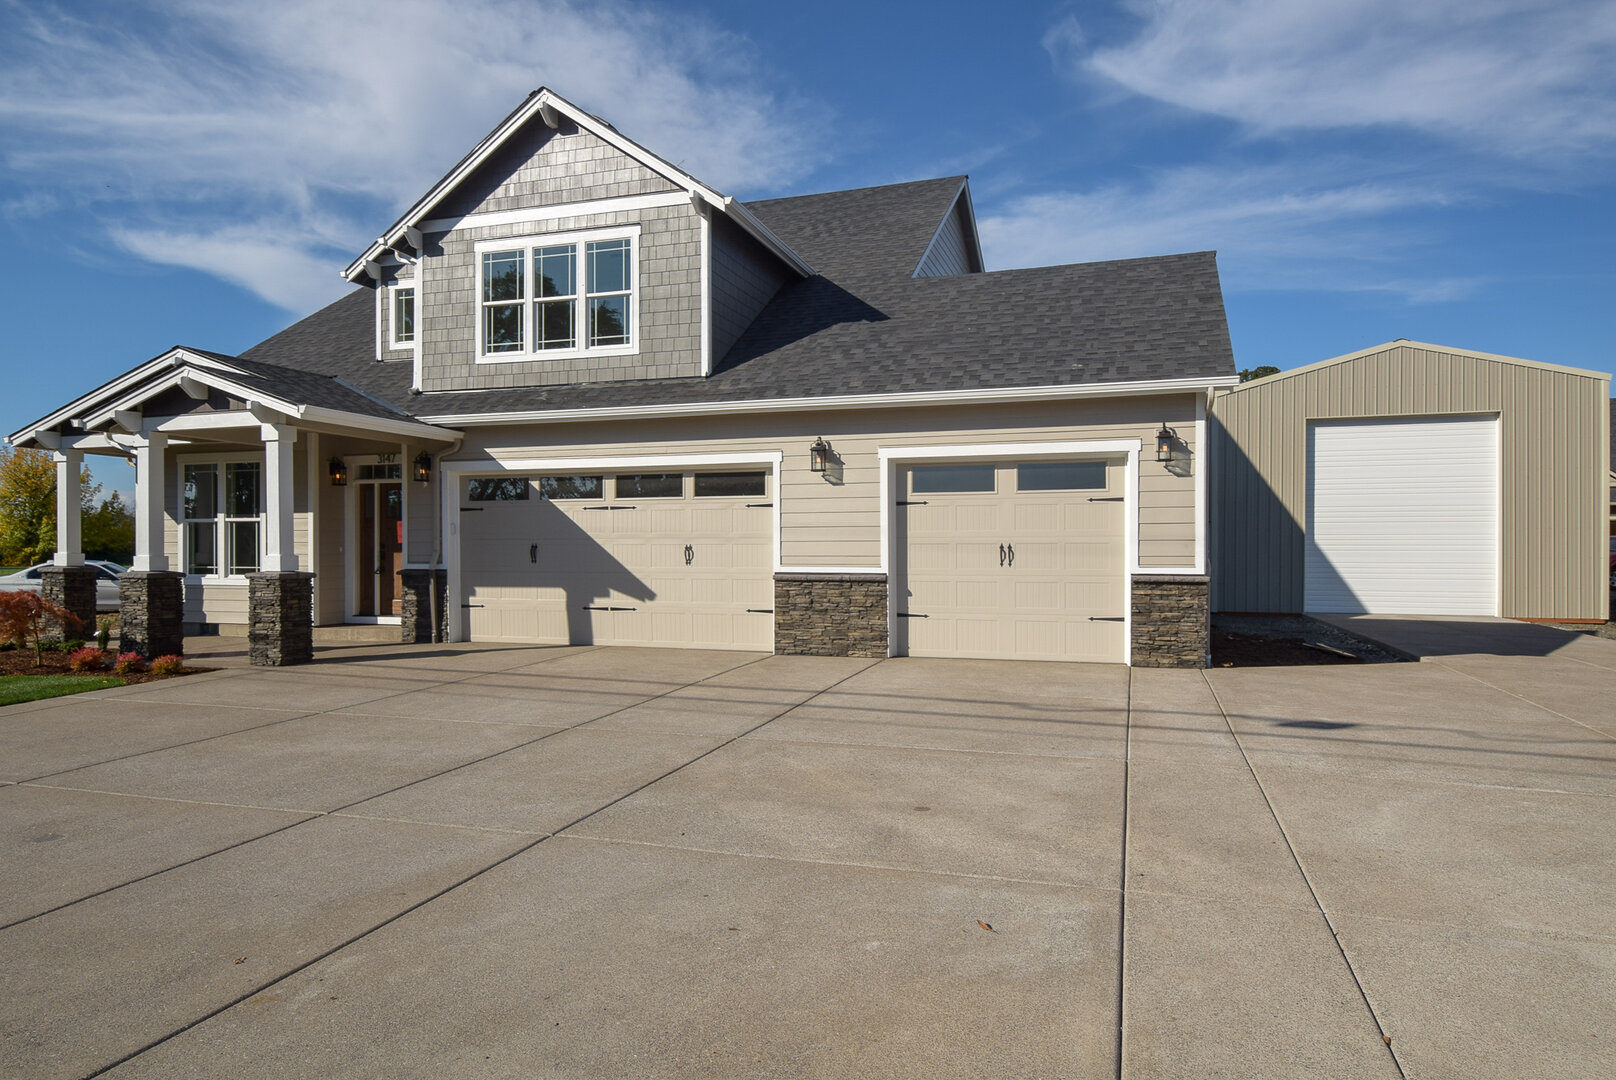 JUST LISTED! 3147 Millersburg Dr NE Albany, OR 97321